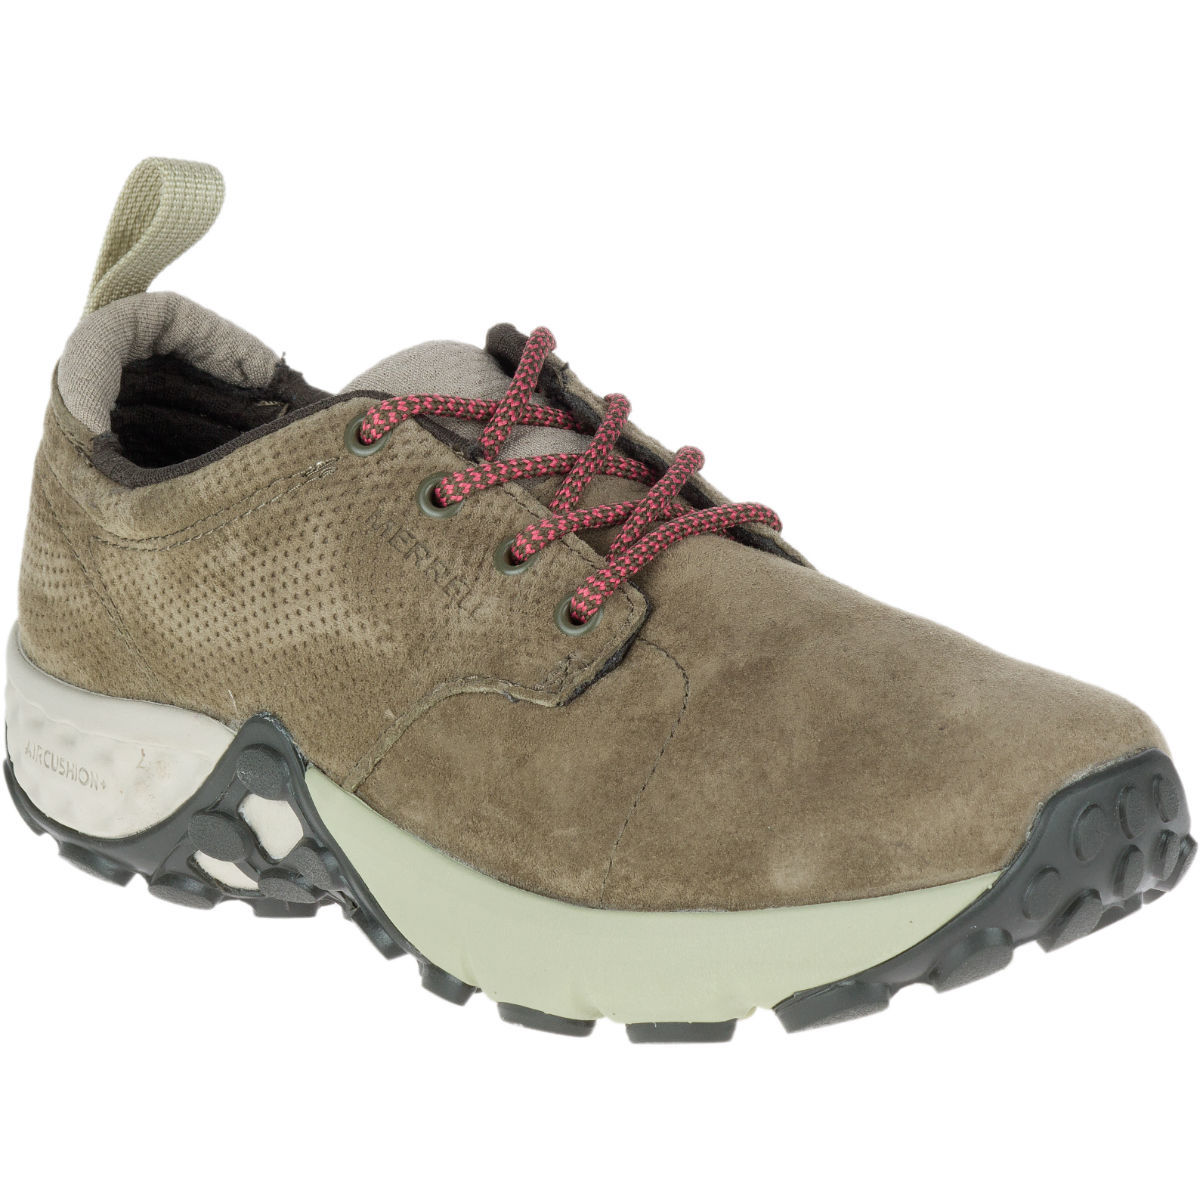 Merrell Women's Jungle Lace Ac+ Hiking Shoes, Dusty Olive - Green, 9.5